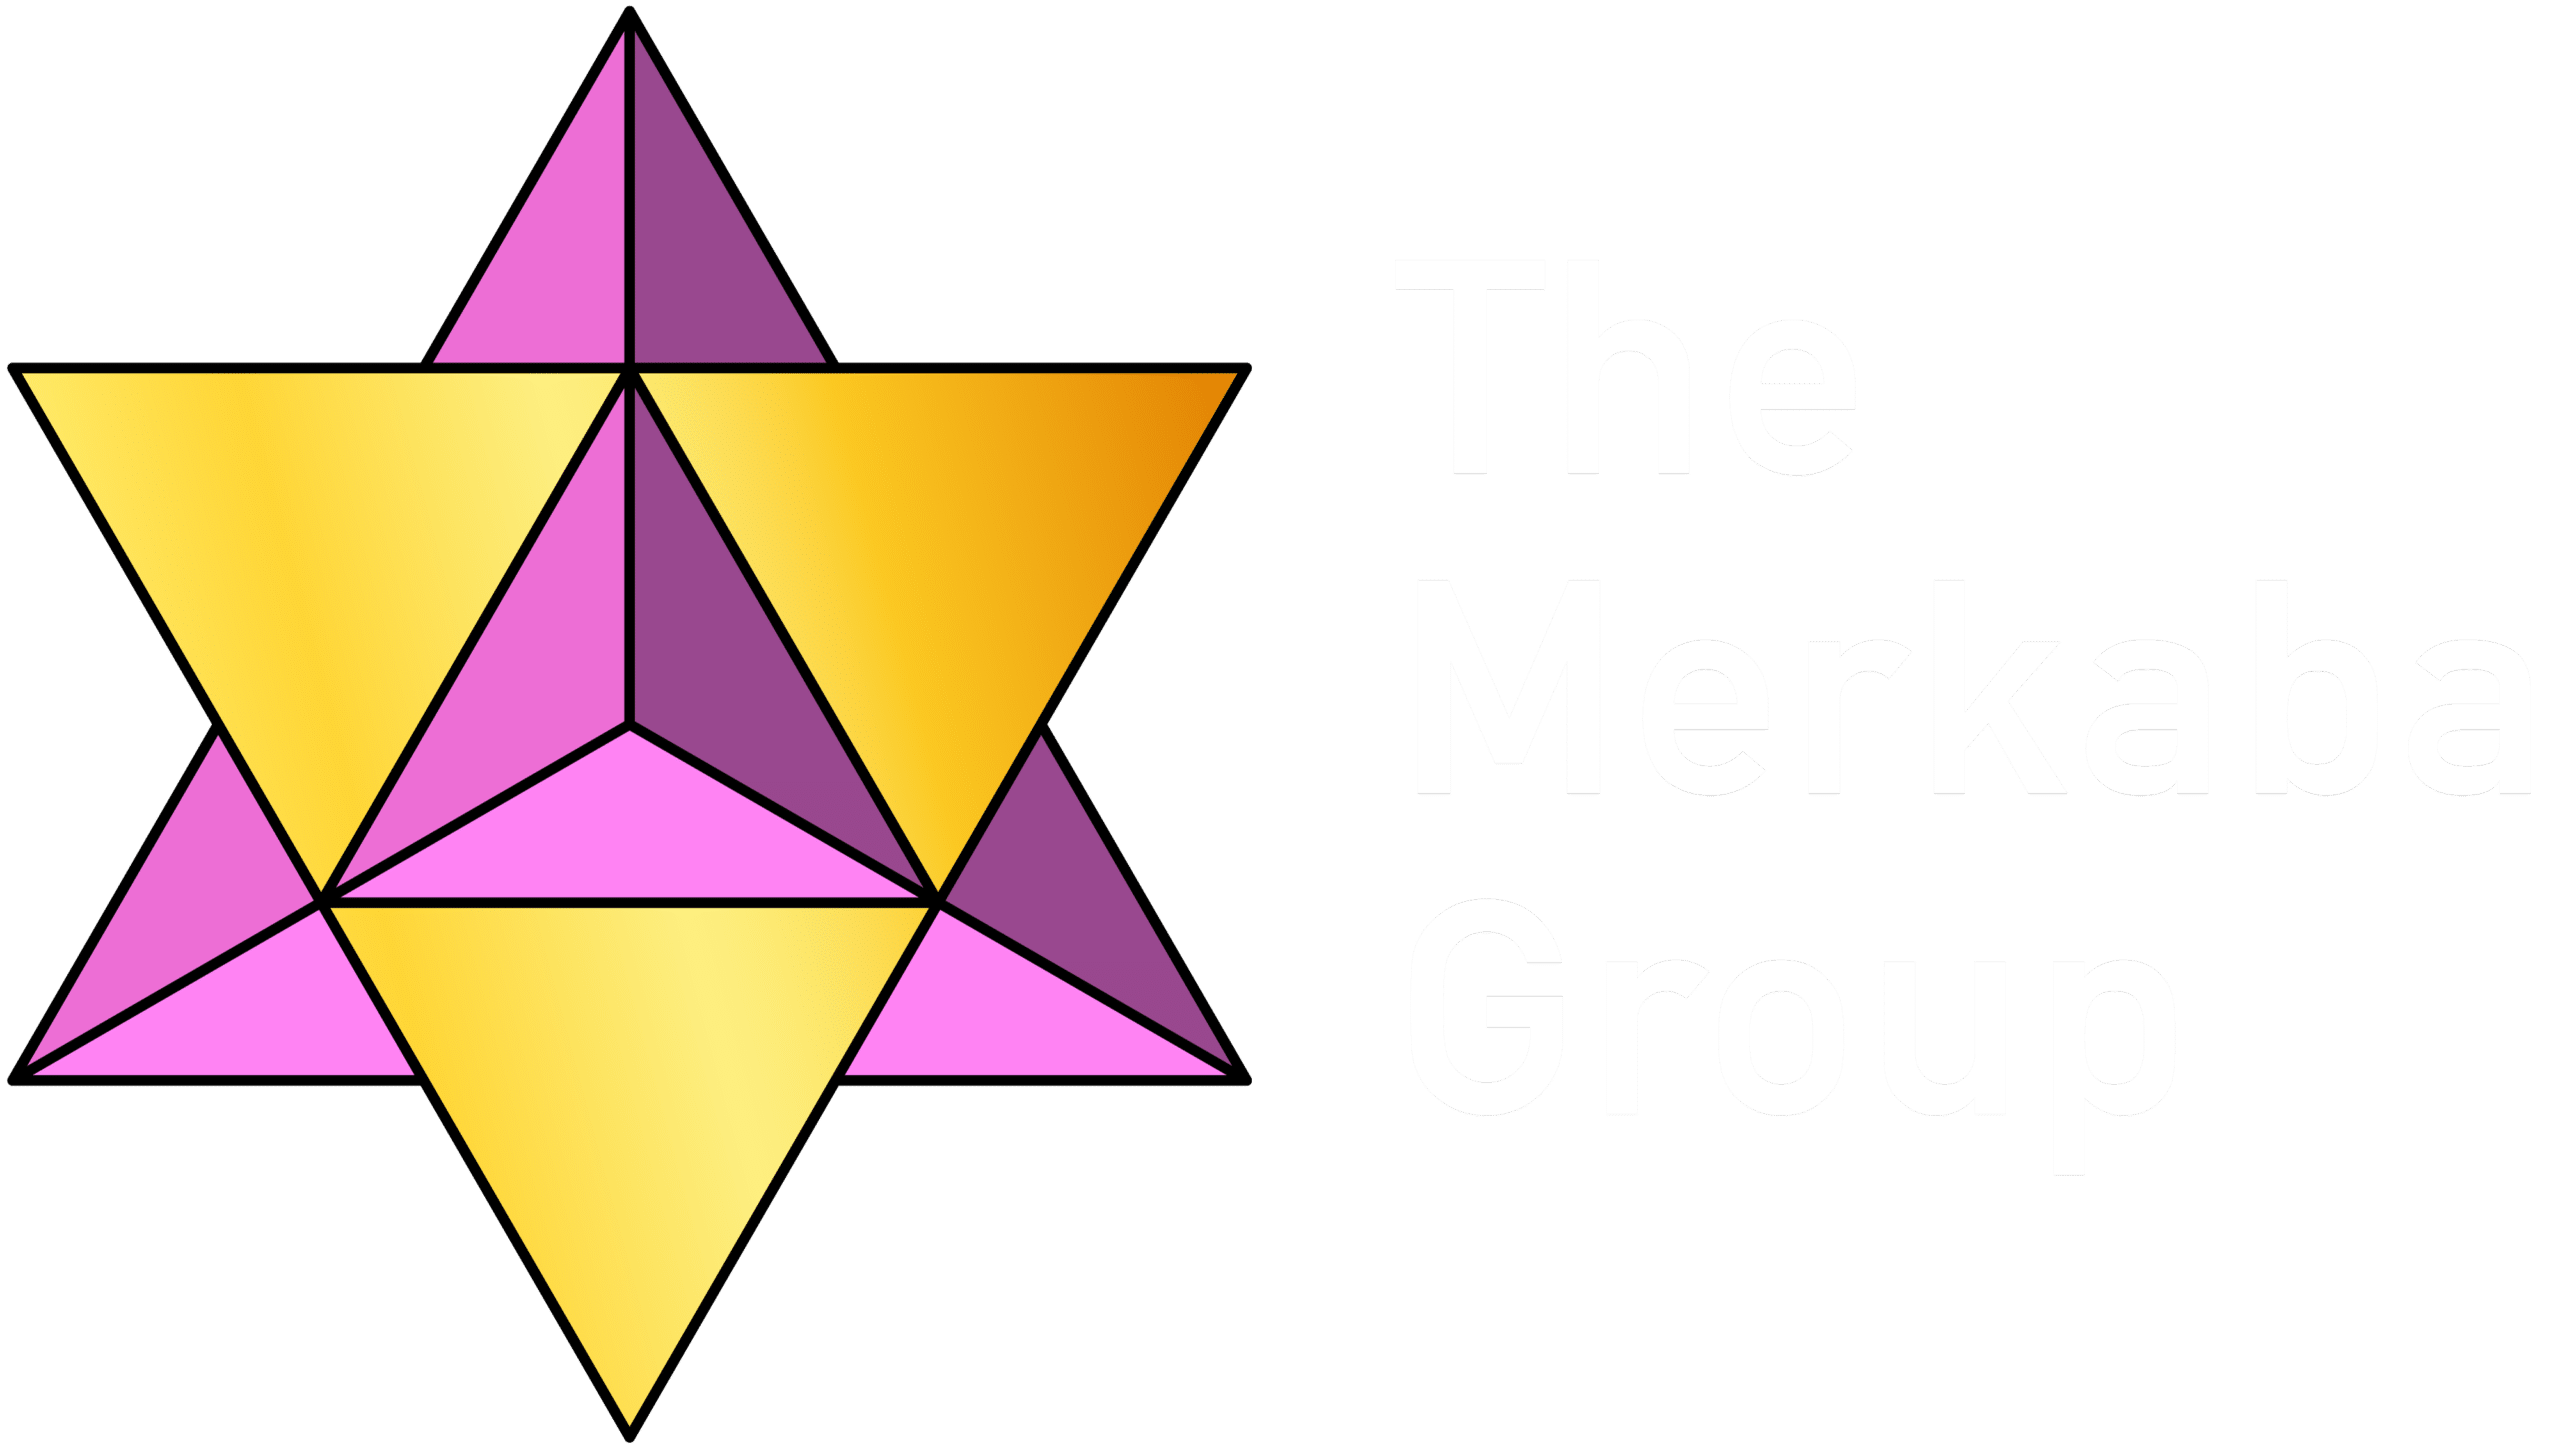 The Merkaba Group